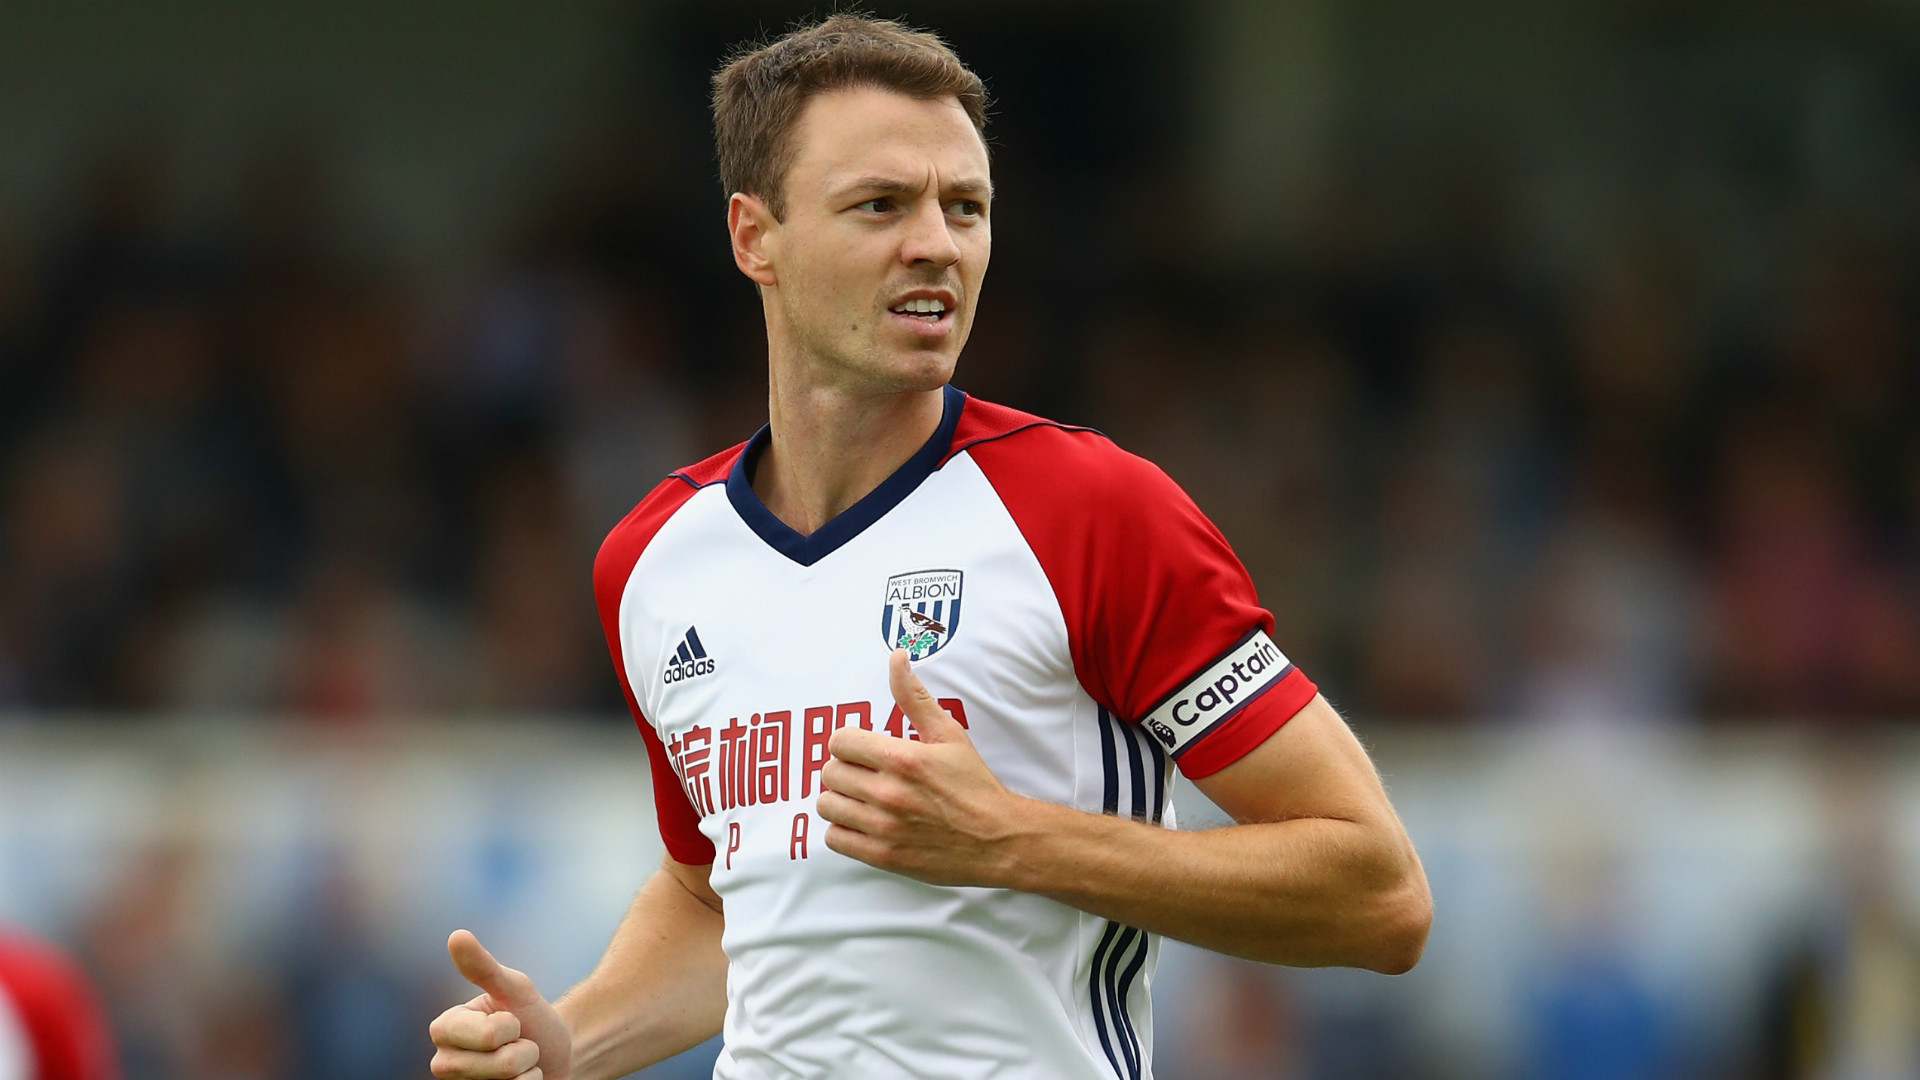 Tony Pulis: Manchester City have stopped calling about Jonny Evans